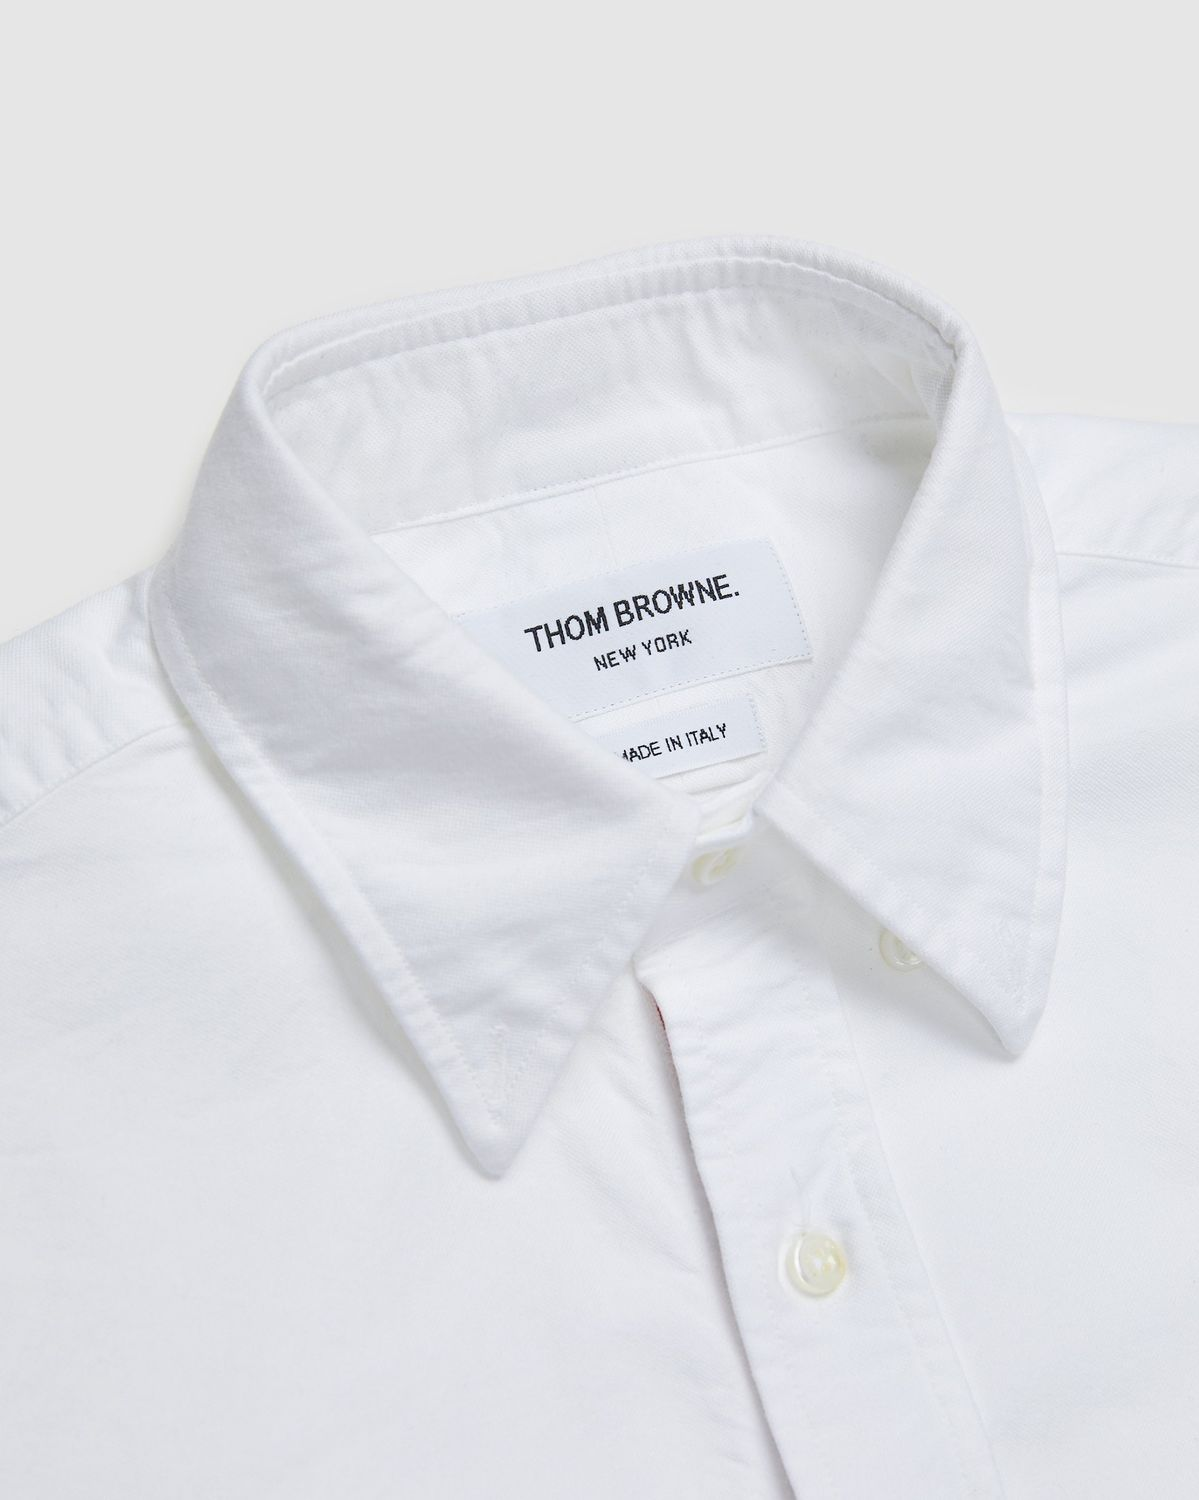 Colette Mon Amour x Thom Browne — White Heart Classic Shirt - Image 3